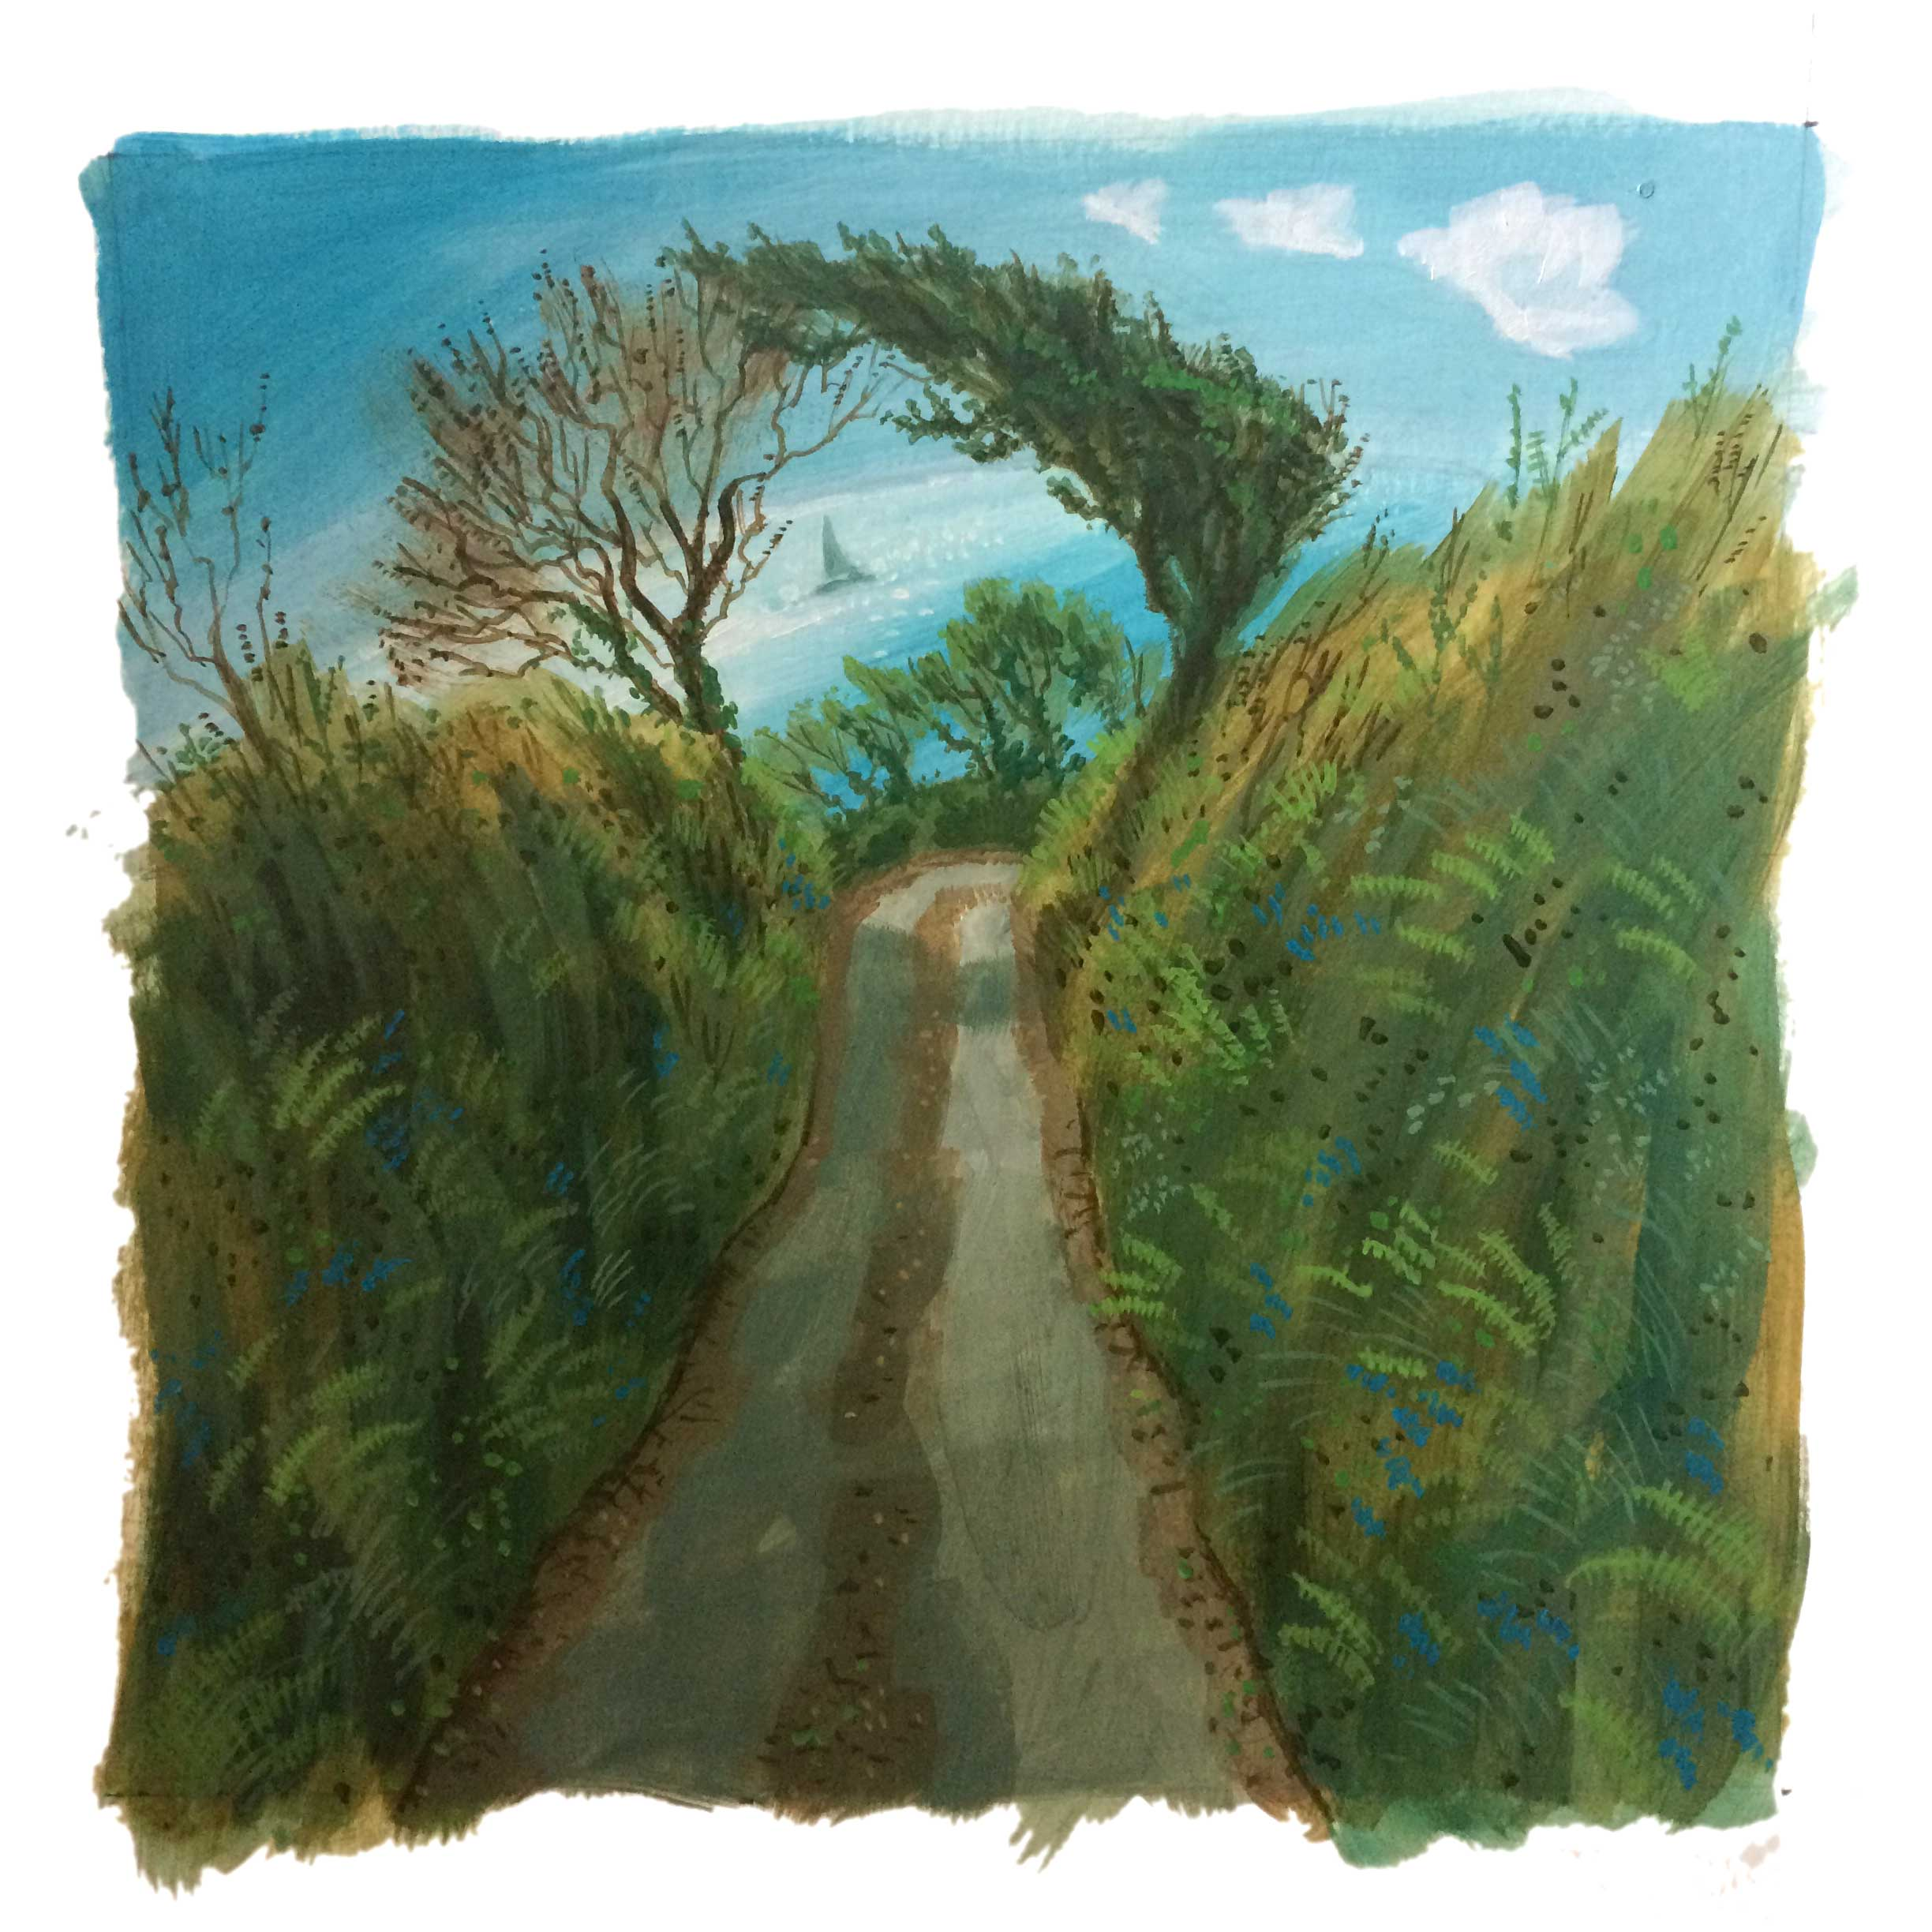 Sunken lane passes beneath windswept trees with a glistening sea beyond